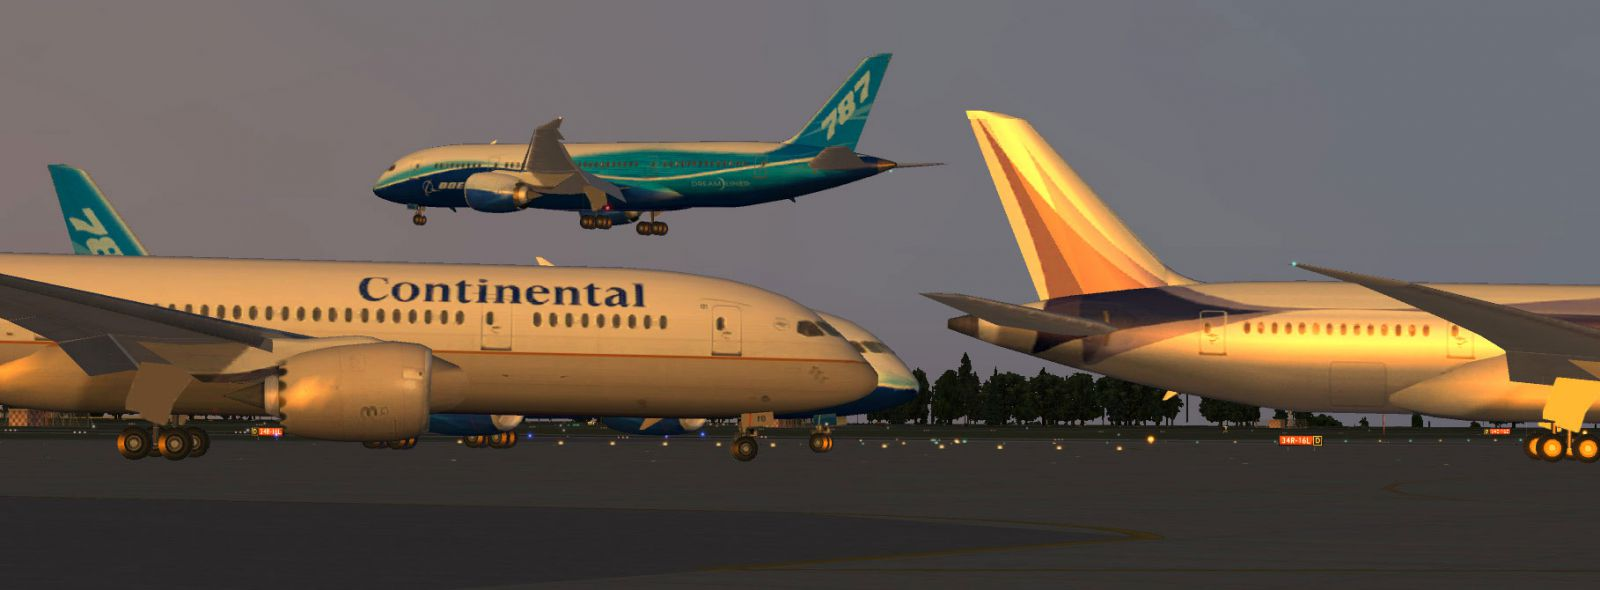 XPFW B787-8 AI Pack 1 0 for X-Plane 11/10